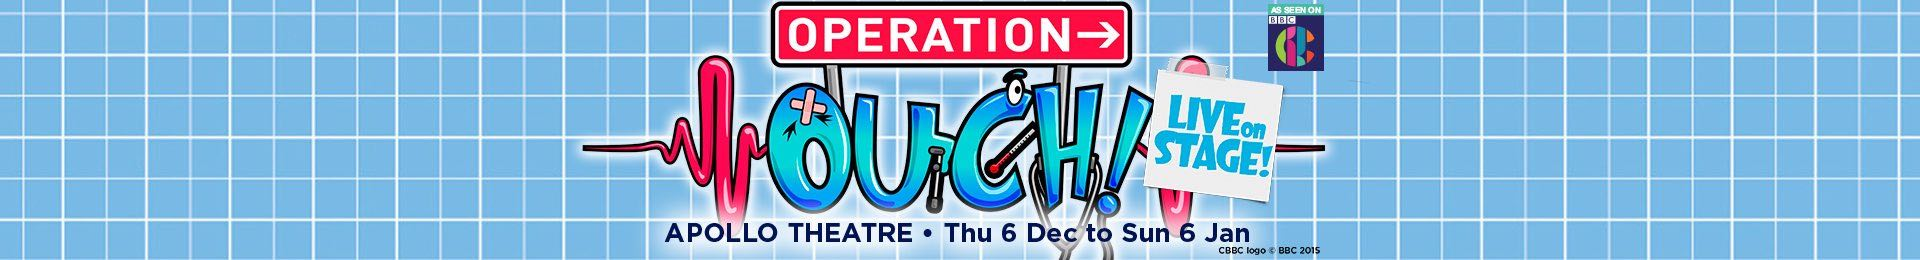 Operation Ouch Live on Stage banner image